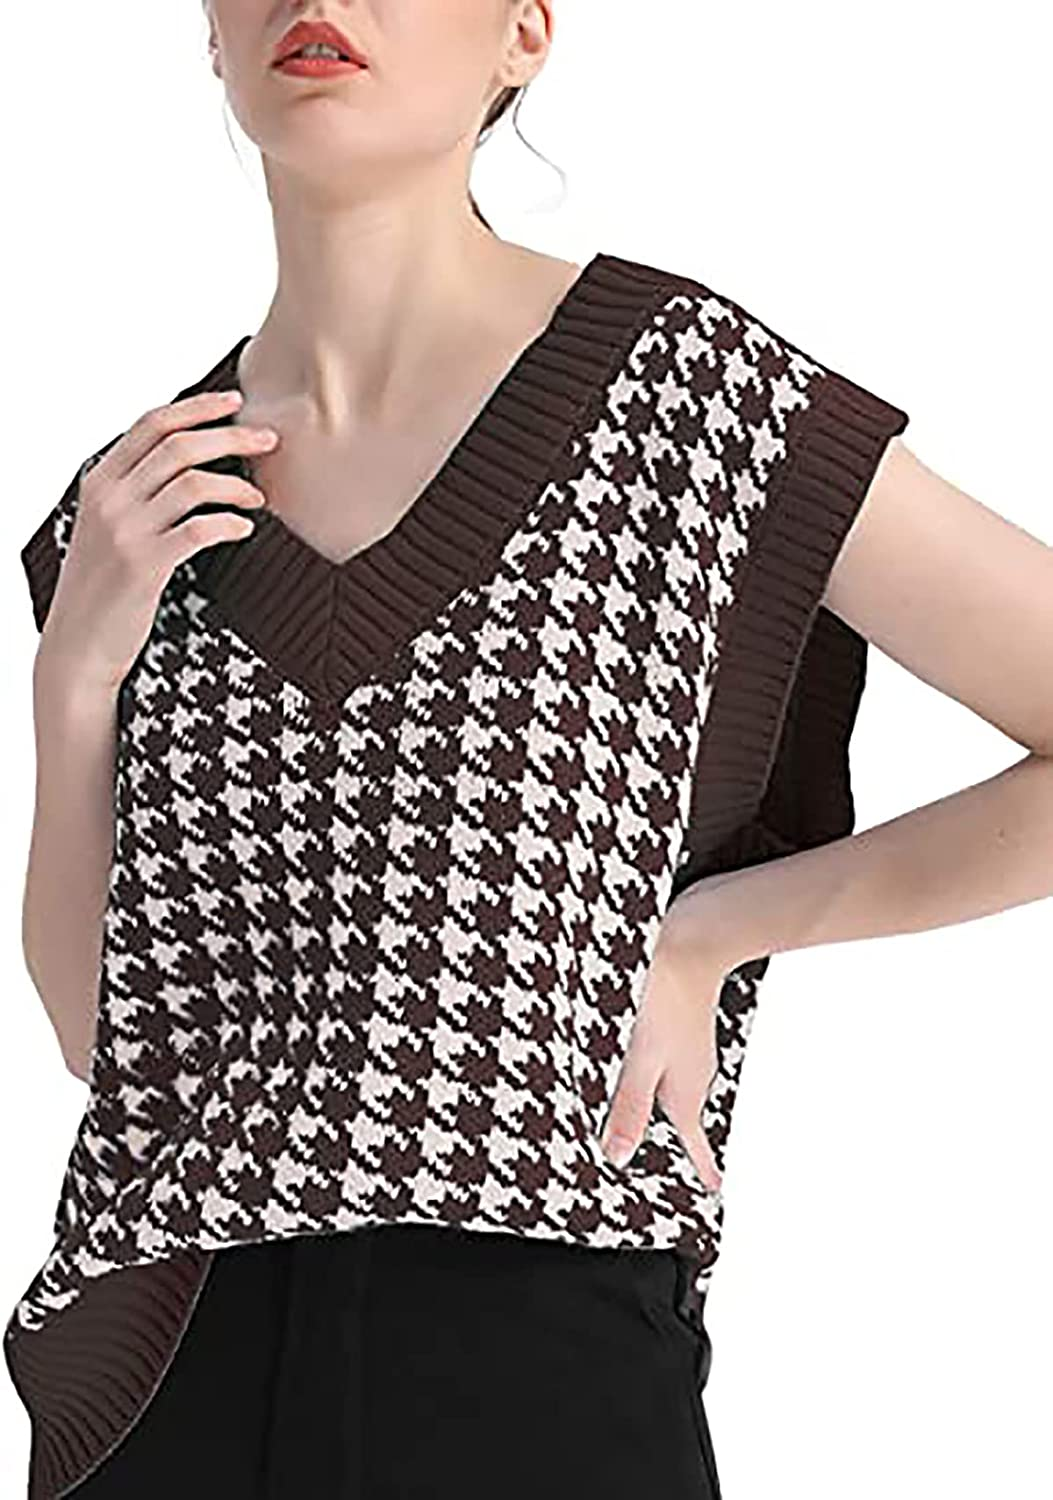 Meladyan Max 73% OFF Women's Oversized Houndstooth Knitted Swea Clearance SALE Limited time Graphic